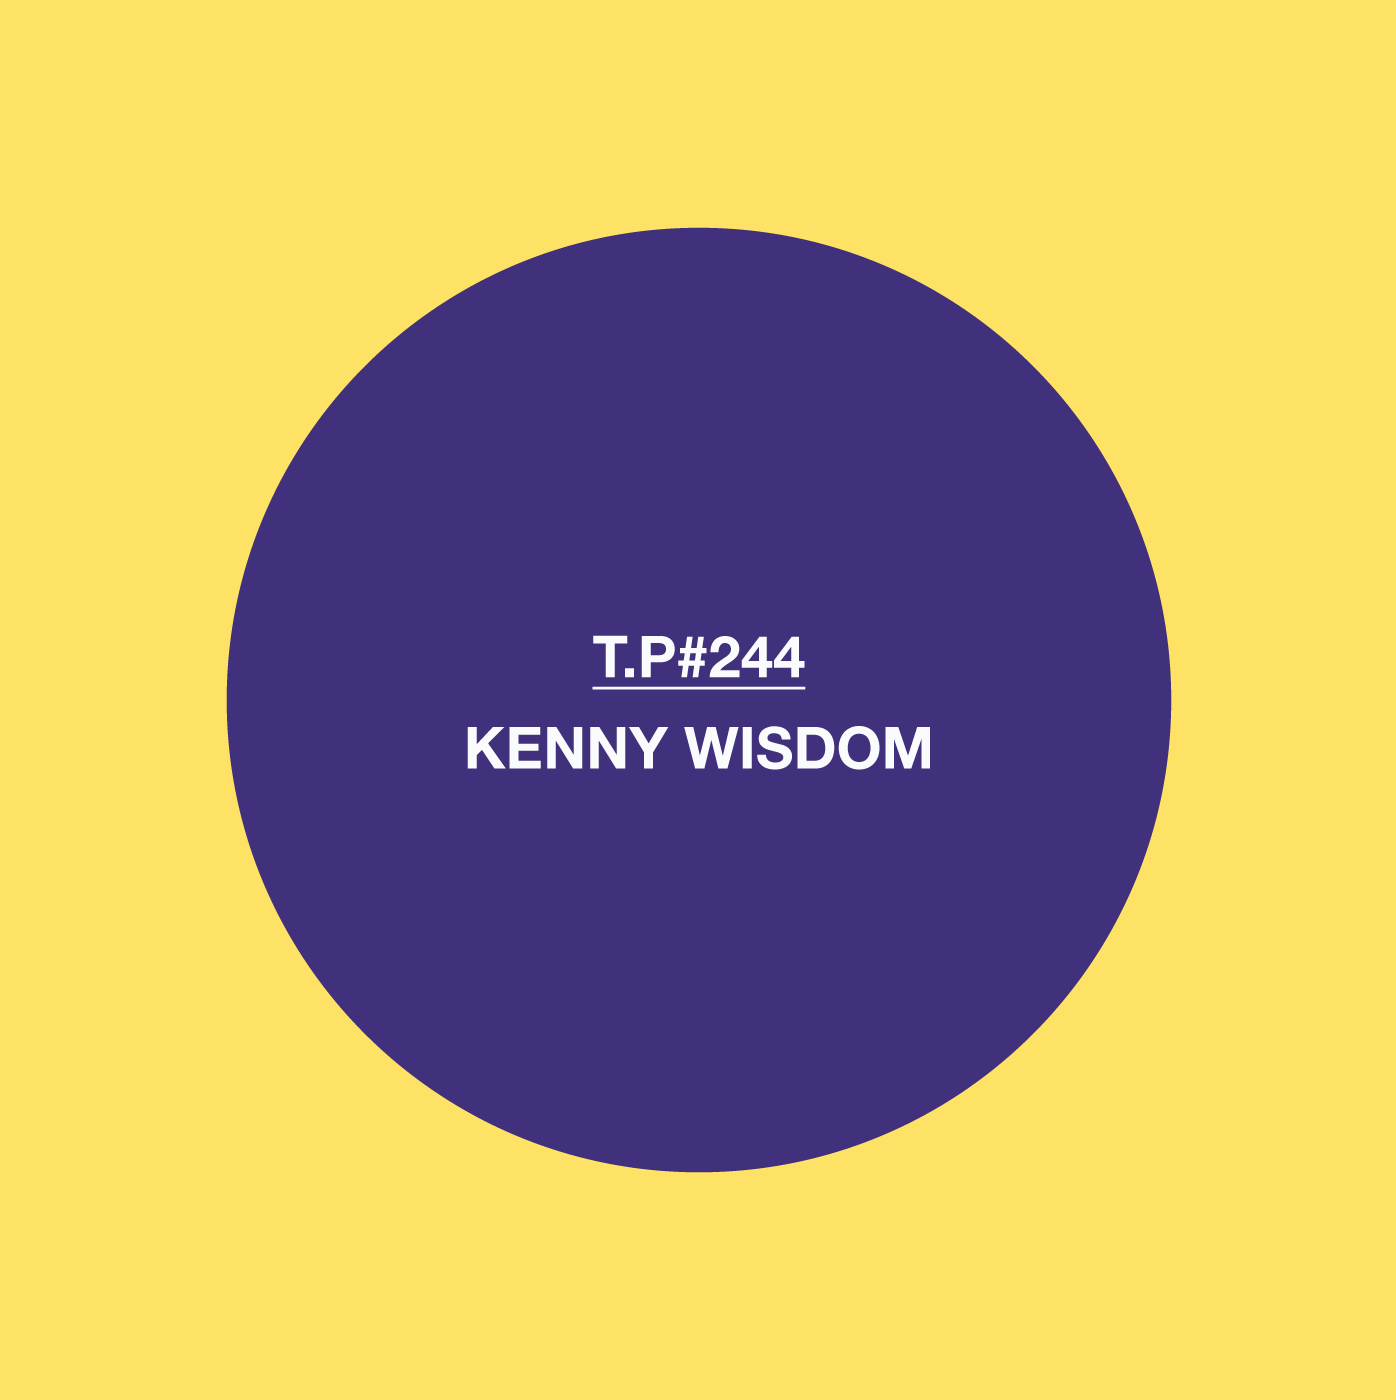 Kenny Wisdom, Test Pressing, Mix, Balearic, Disco, Afro, Electronic